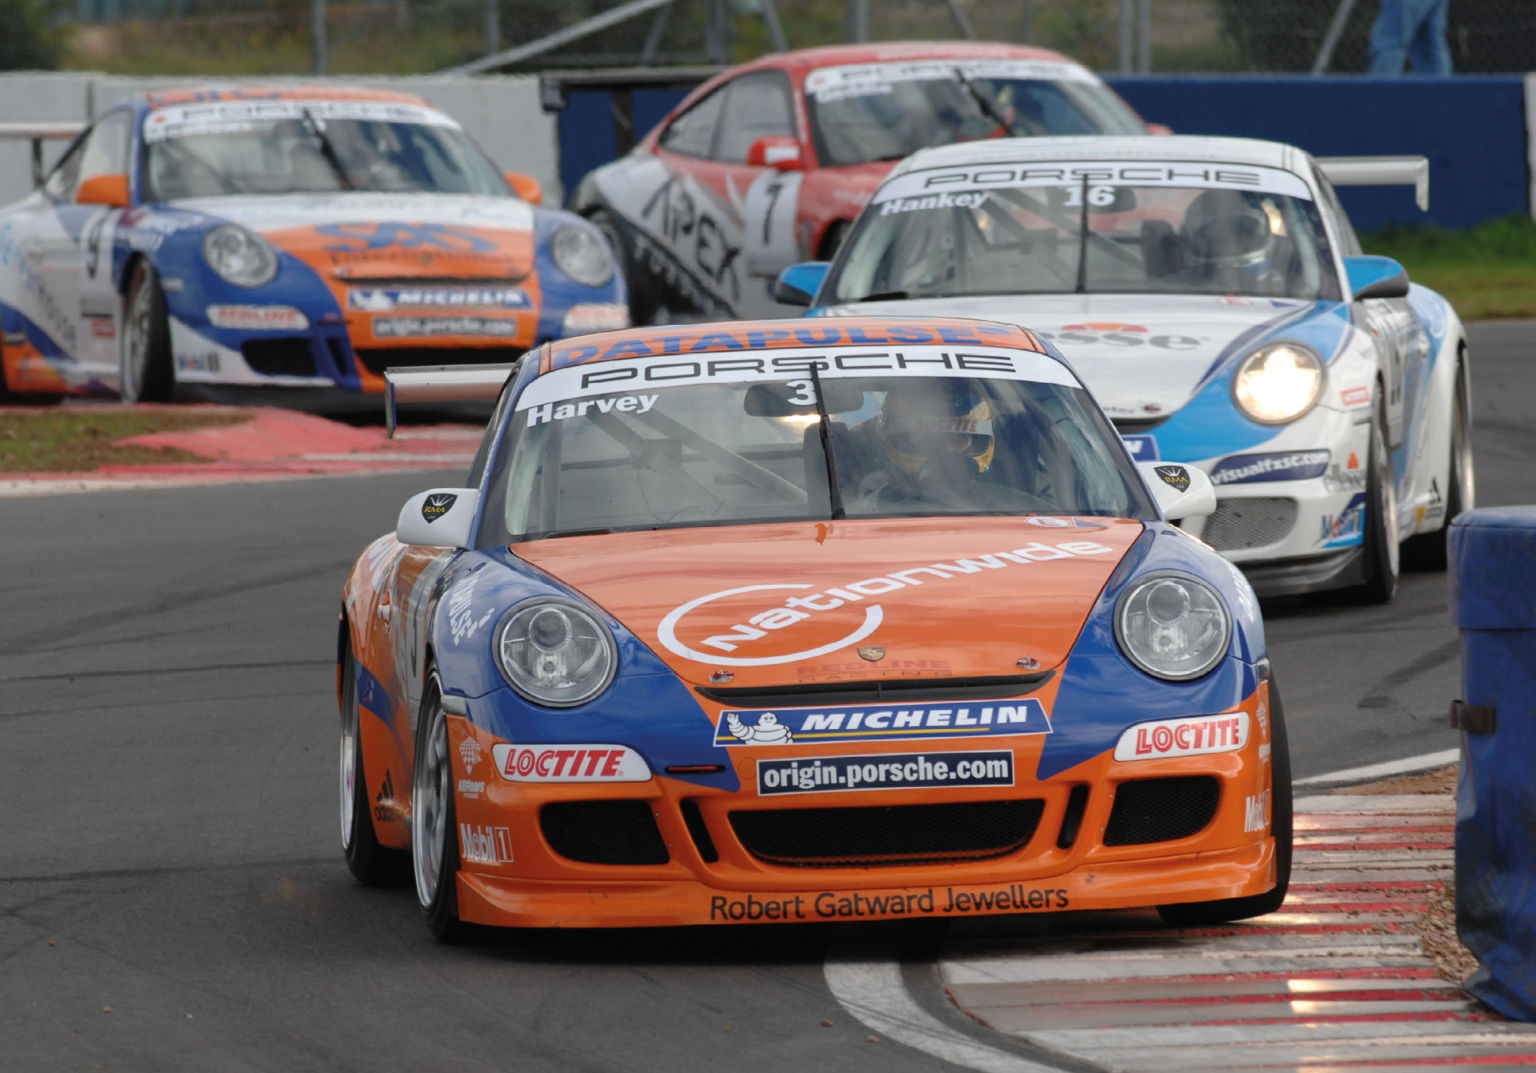 A fourth career – two Porsche Carrera Cup titles